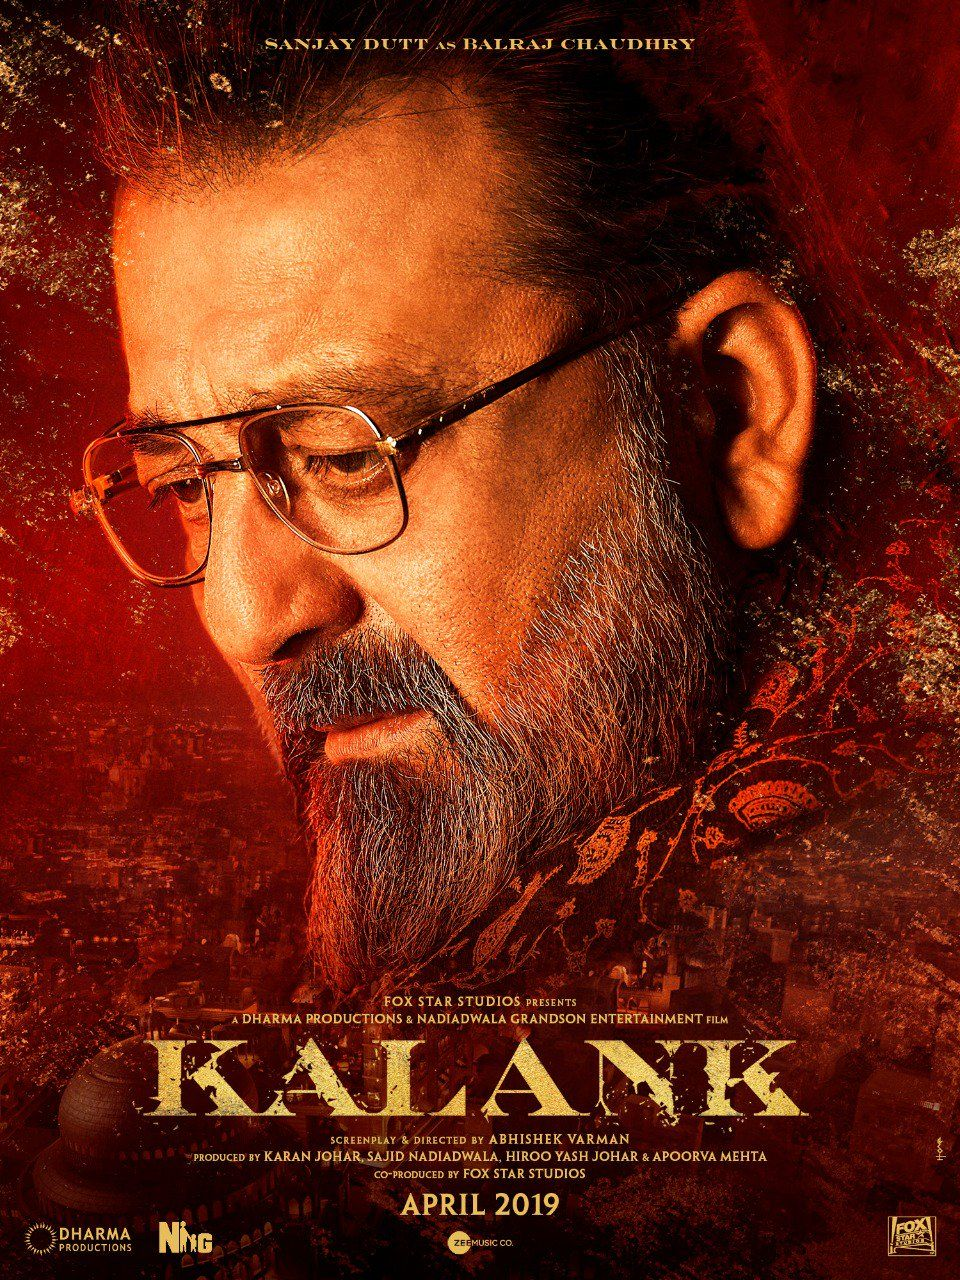 Sanjay Dutt On Twitter Bollywood Movie Cast Images Movies